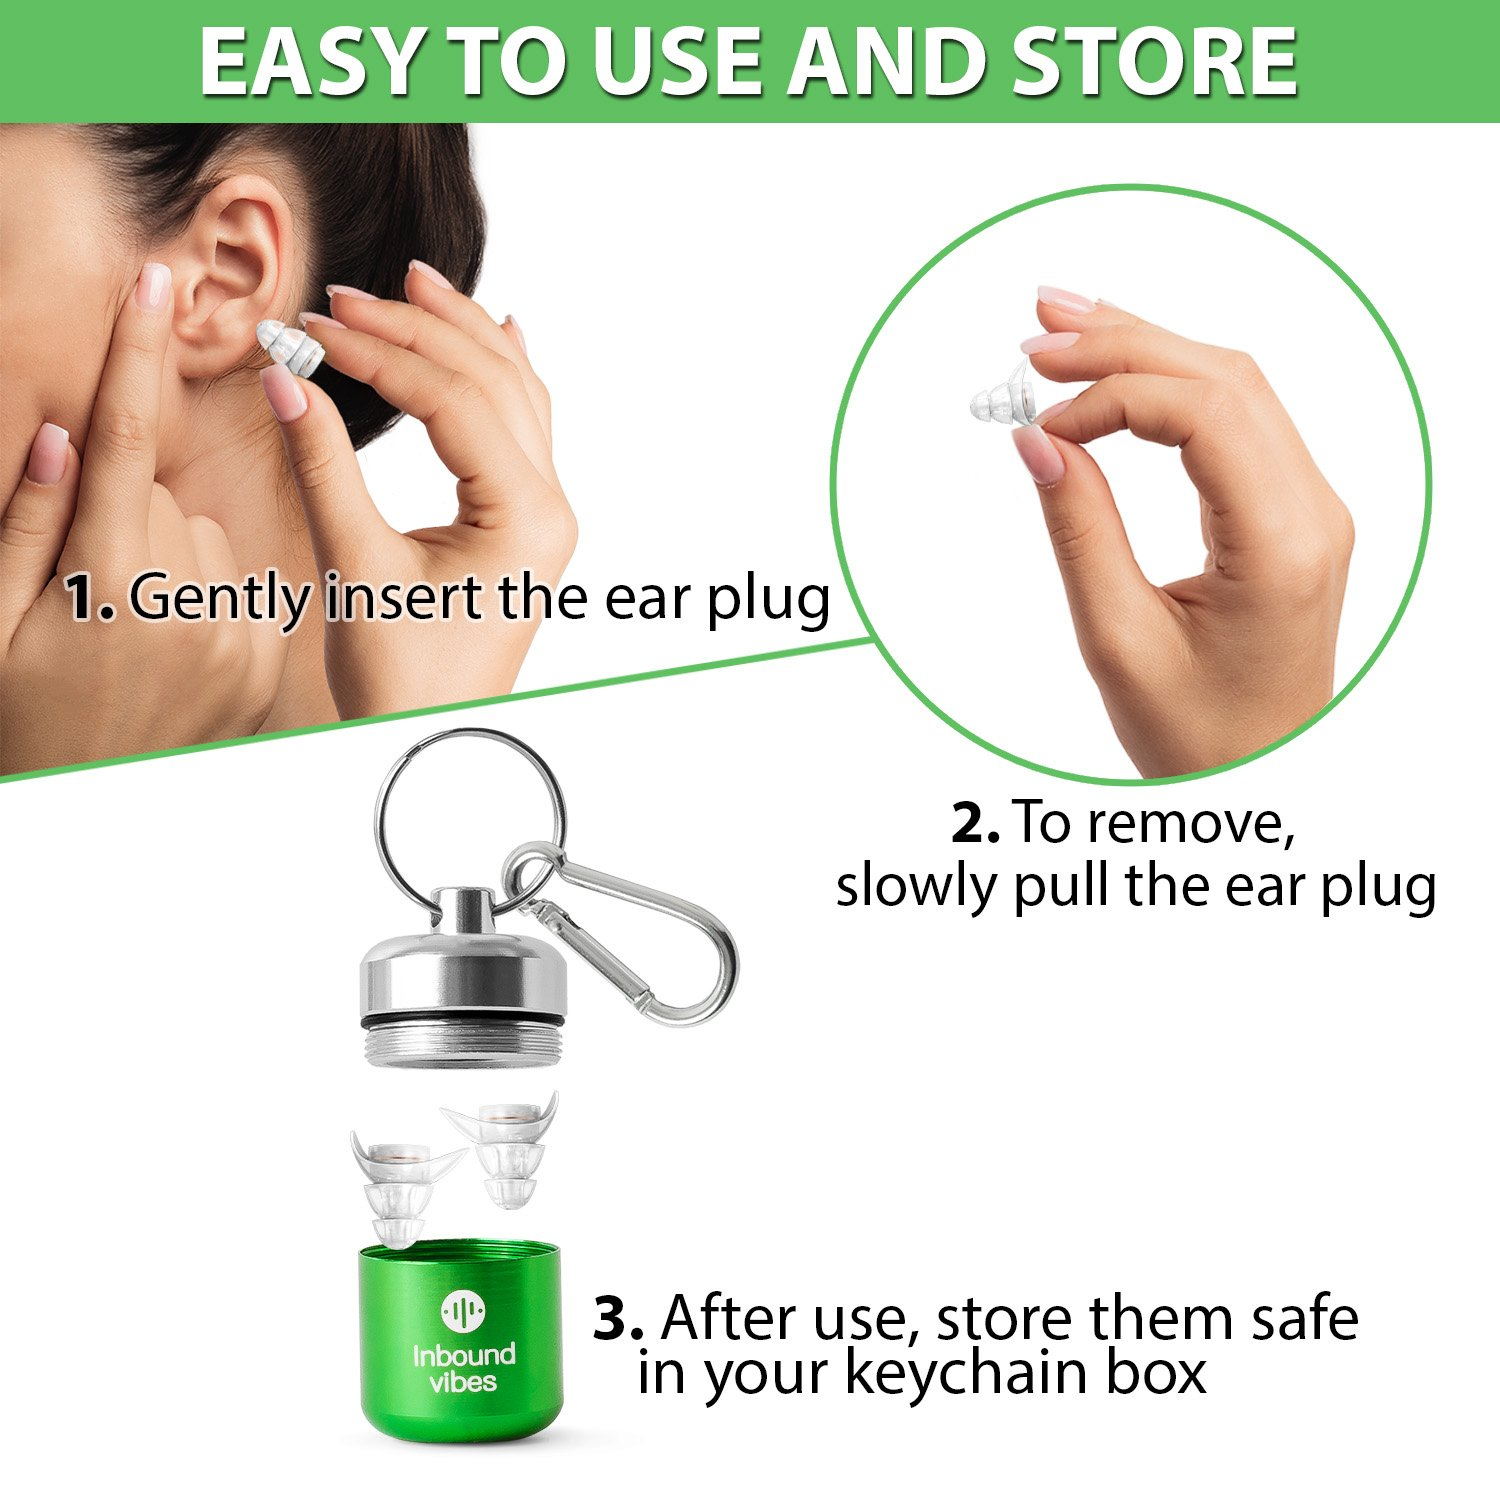 Sound Reducing Professional Ear Plugs - Most Effective Noise Reduction Ear Plugs for Concerts, Work, Sleep and Motorcycle Ear Protection - Soft and Comfortable Reusable Ear Plugs - Earplugs Sleep by Inbound Vibes (Image #2)